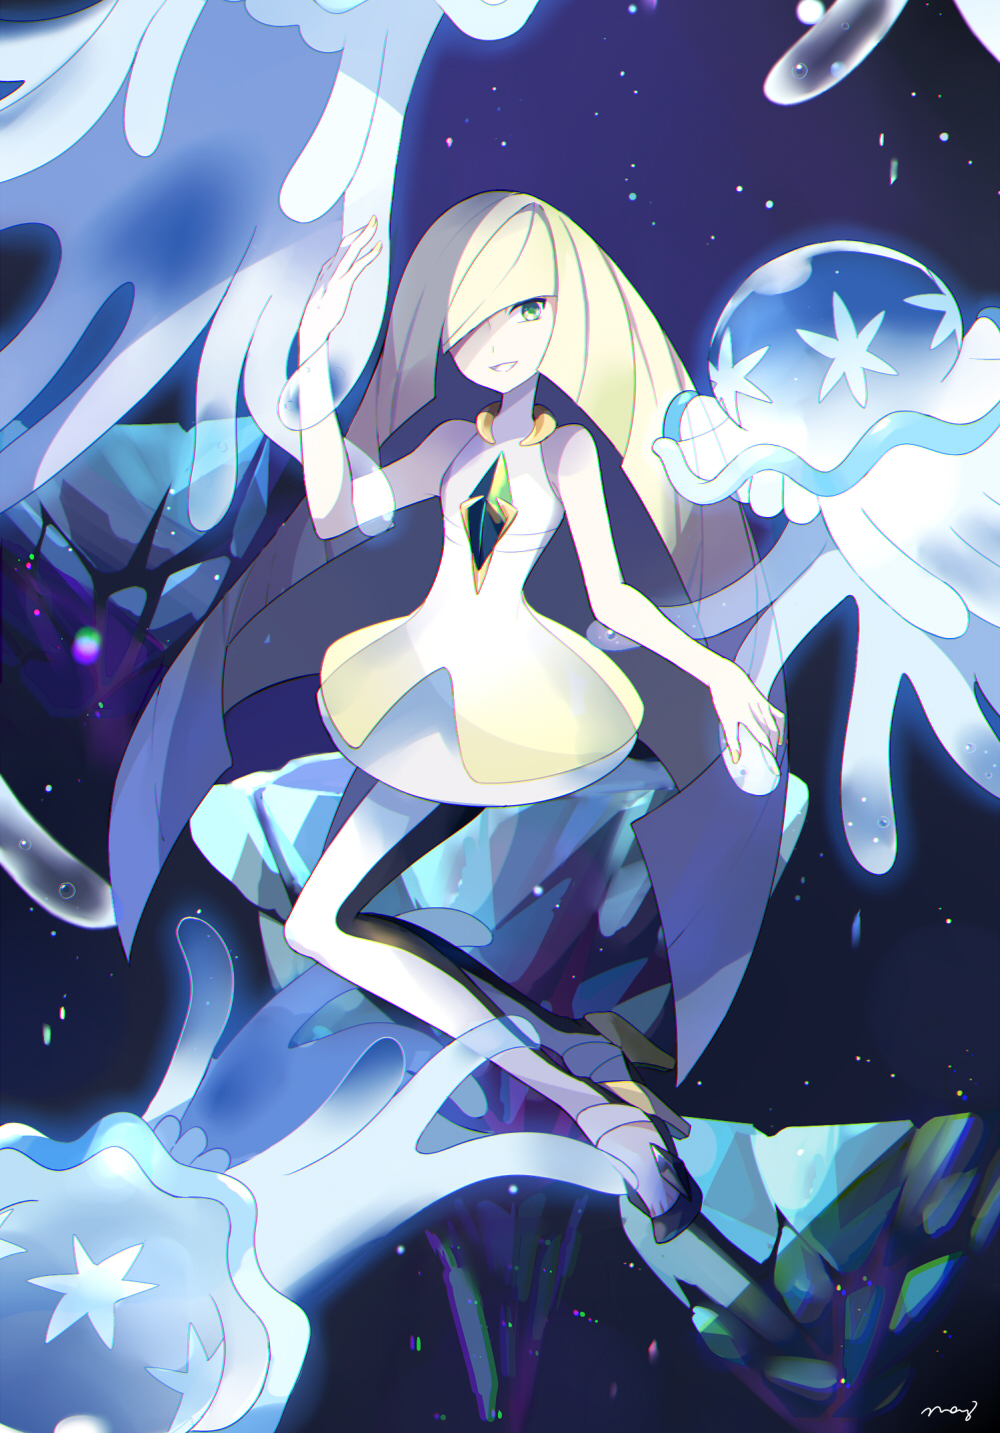 1girl bare_arms bare_shoulders black_footwear blonde_hair dress emerald floating_rock full_body gem green_eyes hair_over_one_eye hand_up high_heels highres layered_dress light_particles long_hair looking_at_viewer lusamine_(pokemon) mei_(maysroom) nihilego pants pokemon pokemon_(creature) pokemon_(game) pokemon_sm short_dress sitting sleeveless sleeveless_dress straight_hair tentacle ultra_beast very_long_hair white_dress